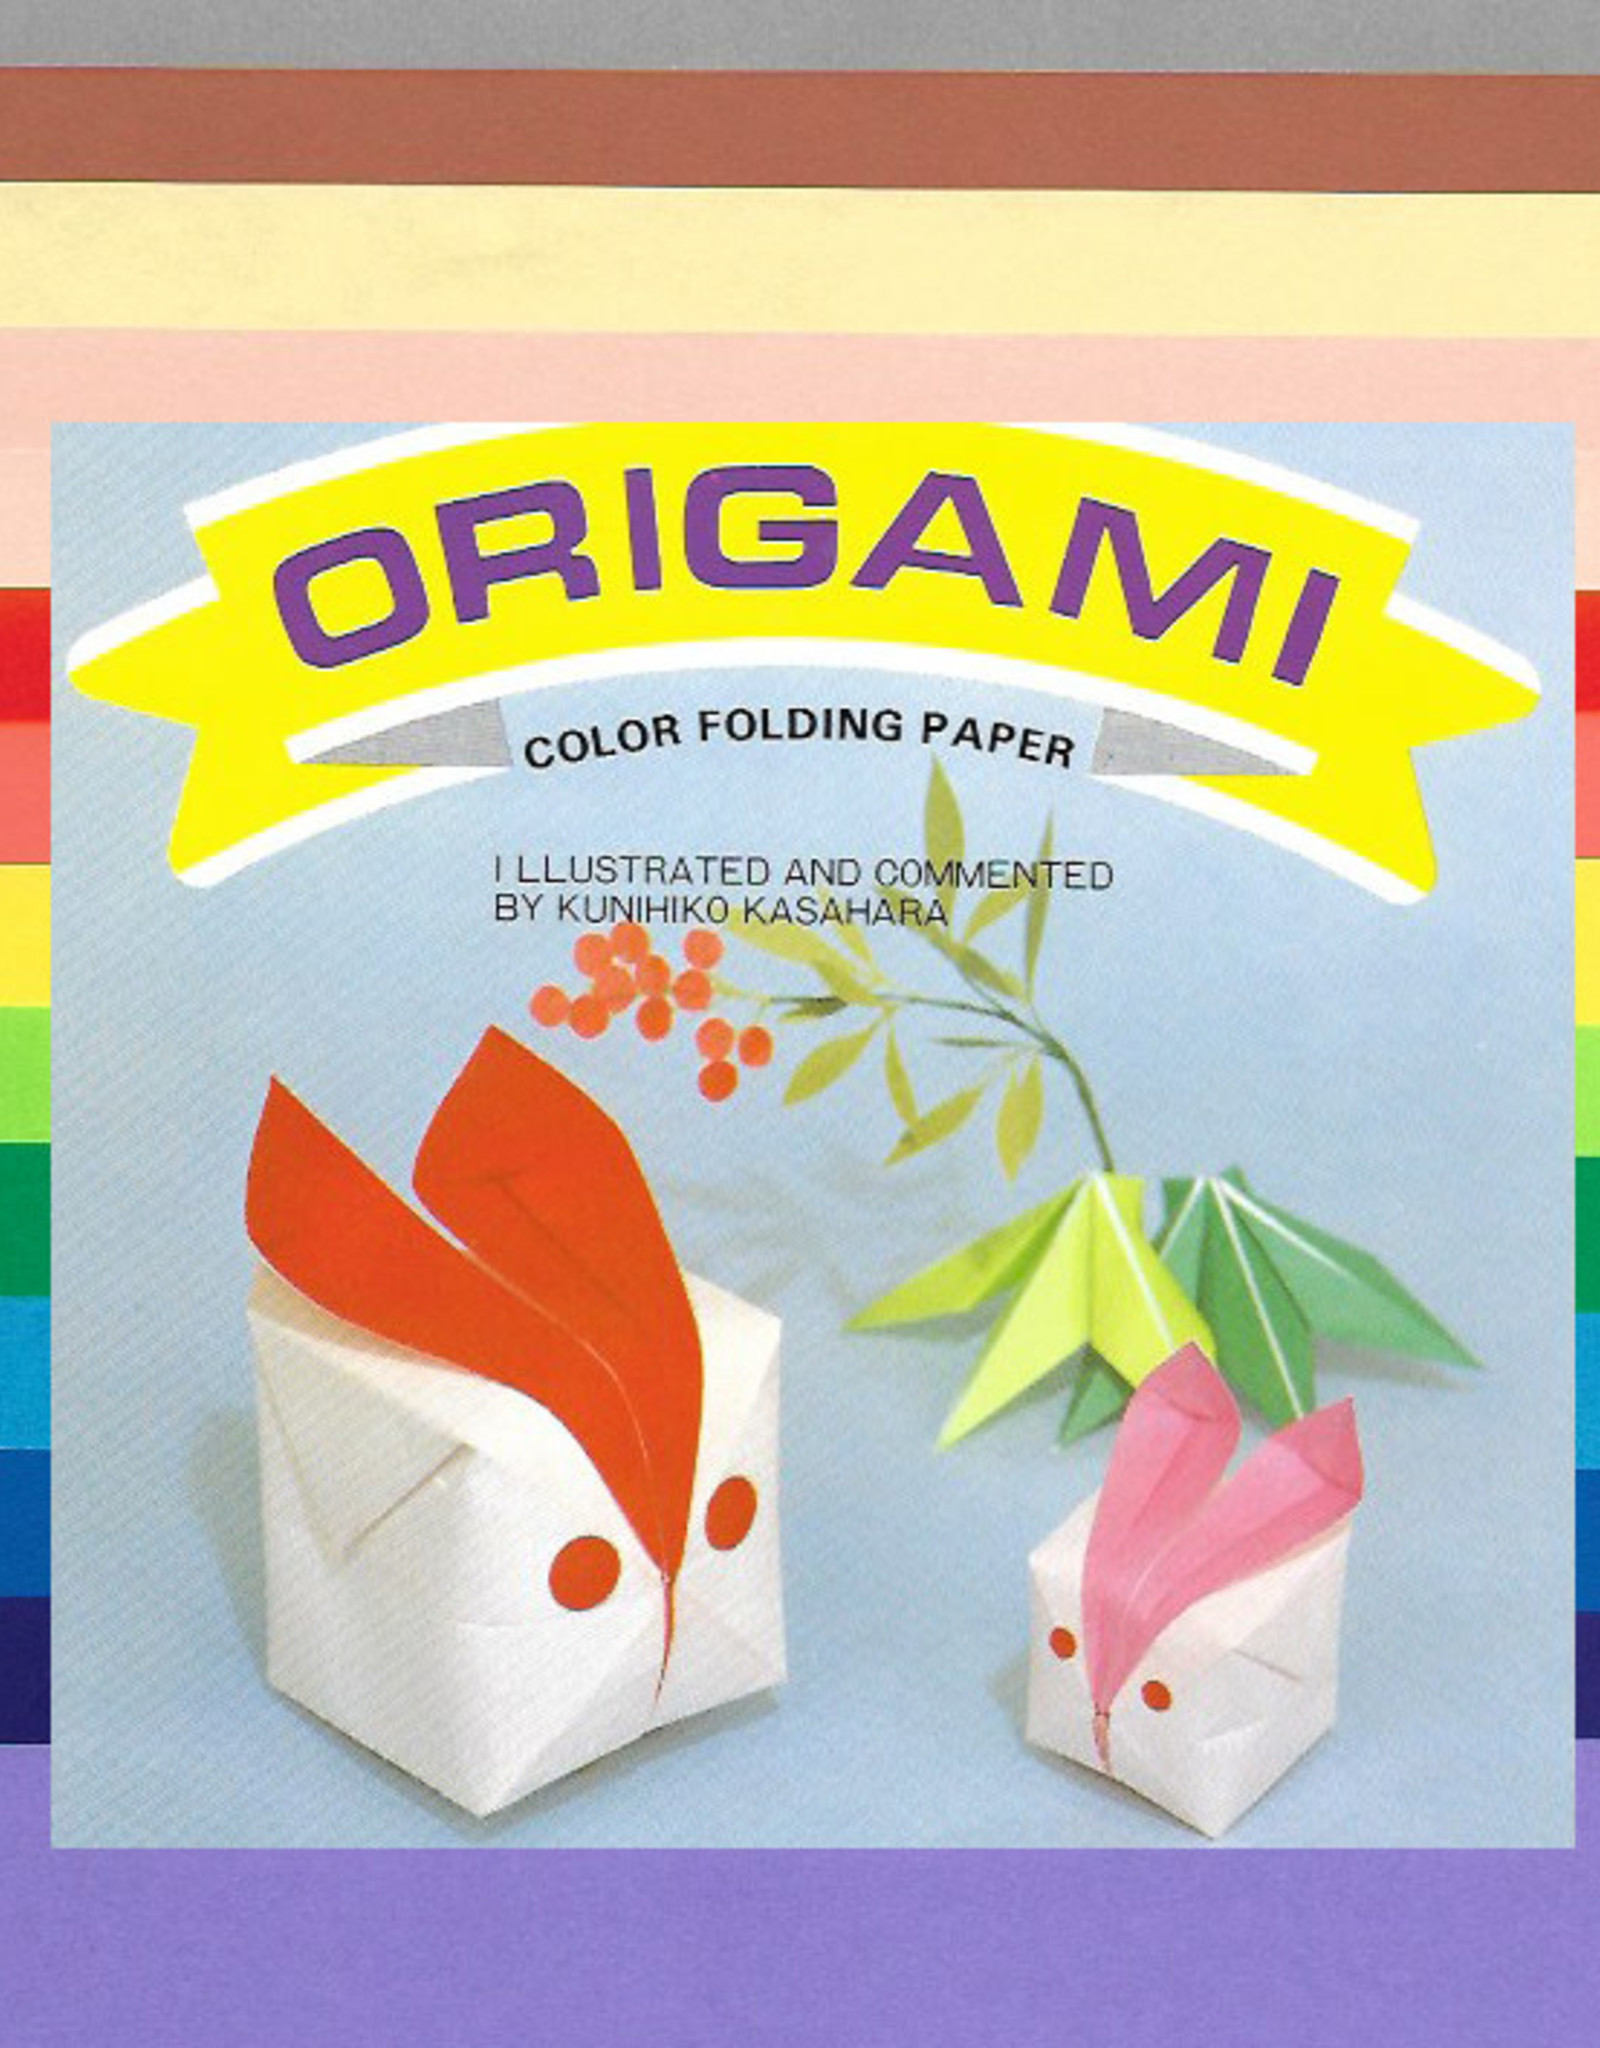 "Origami, 7"" x 7"", 3 Different Sizes, Multi Color Folding Paper, 60 Total Sheets"